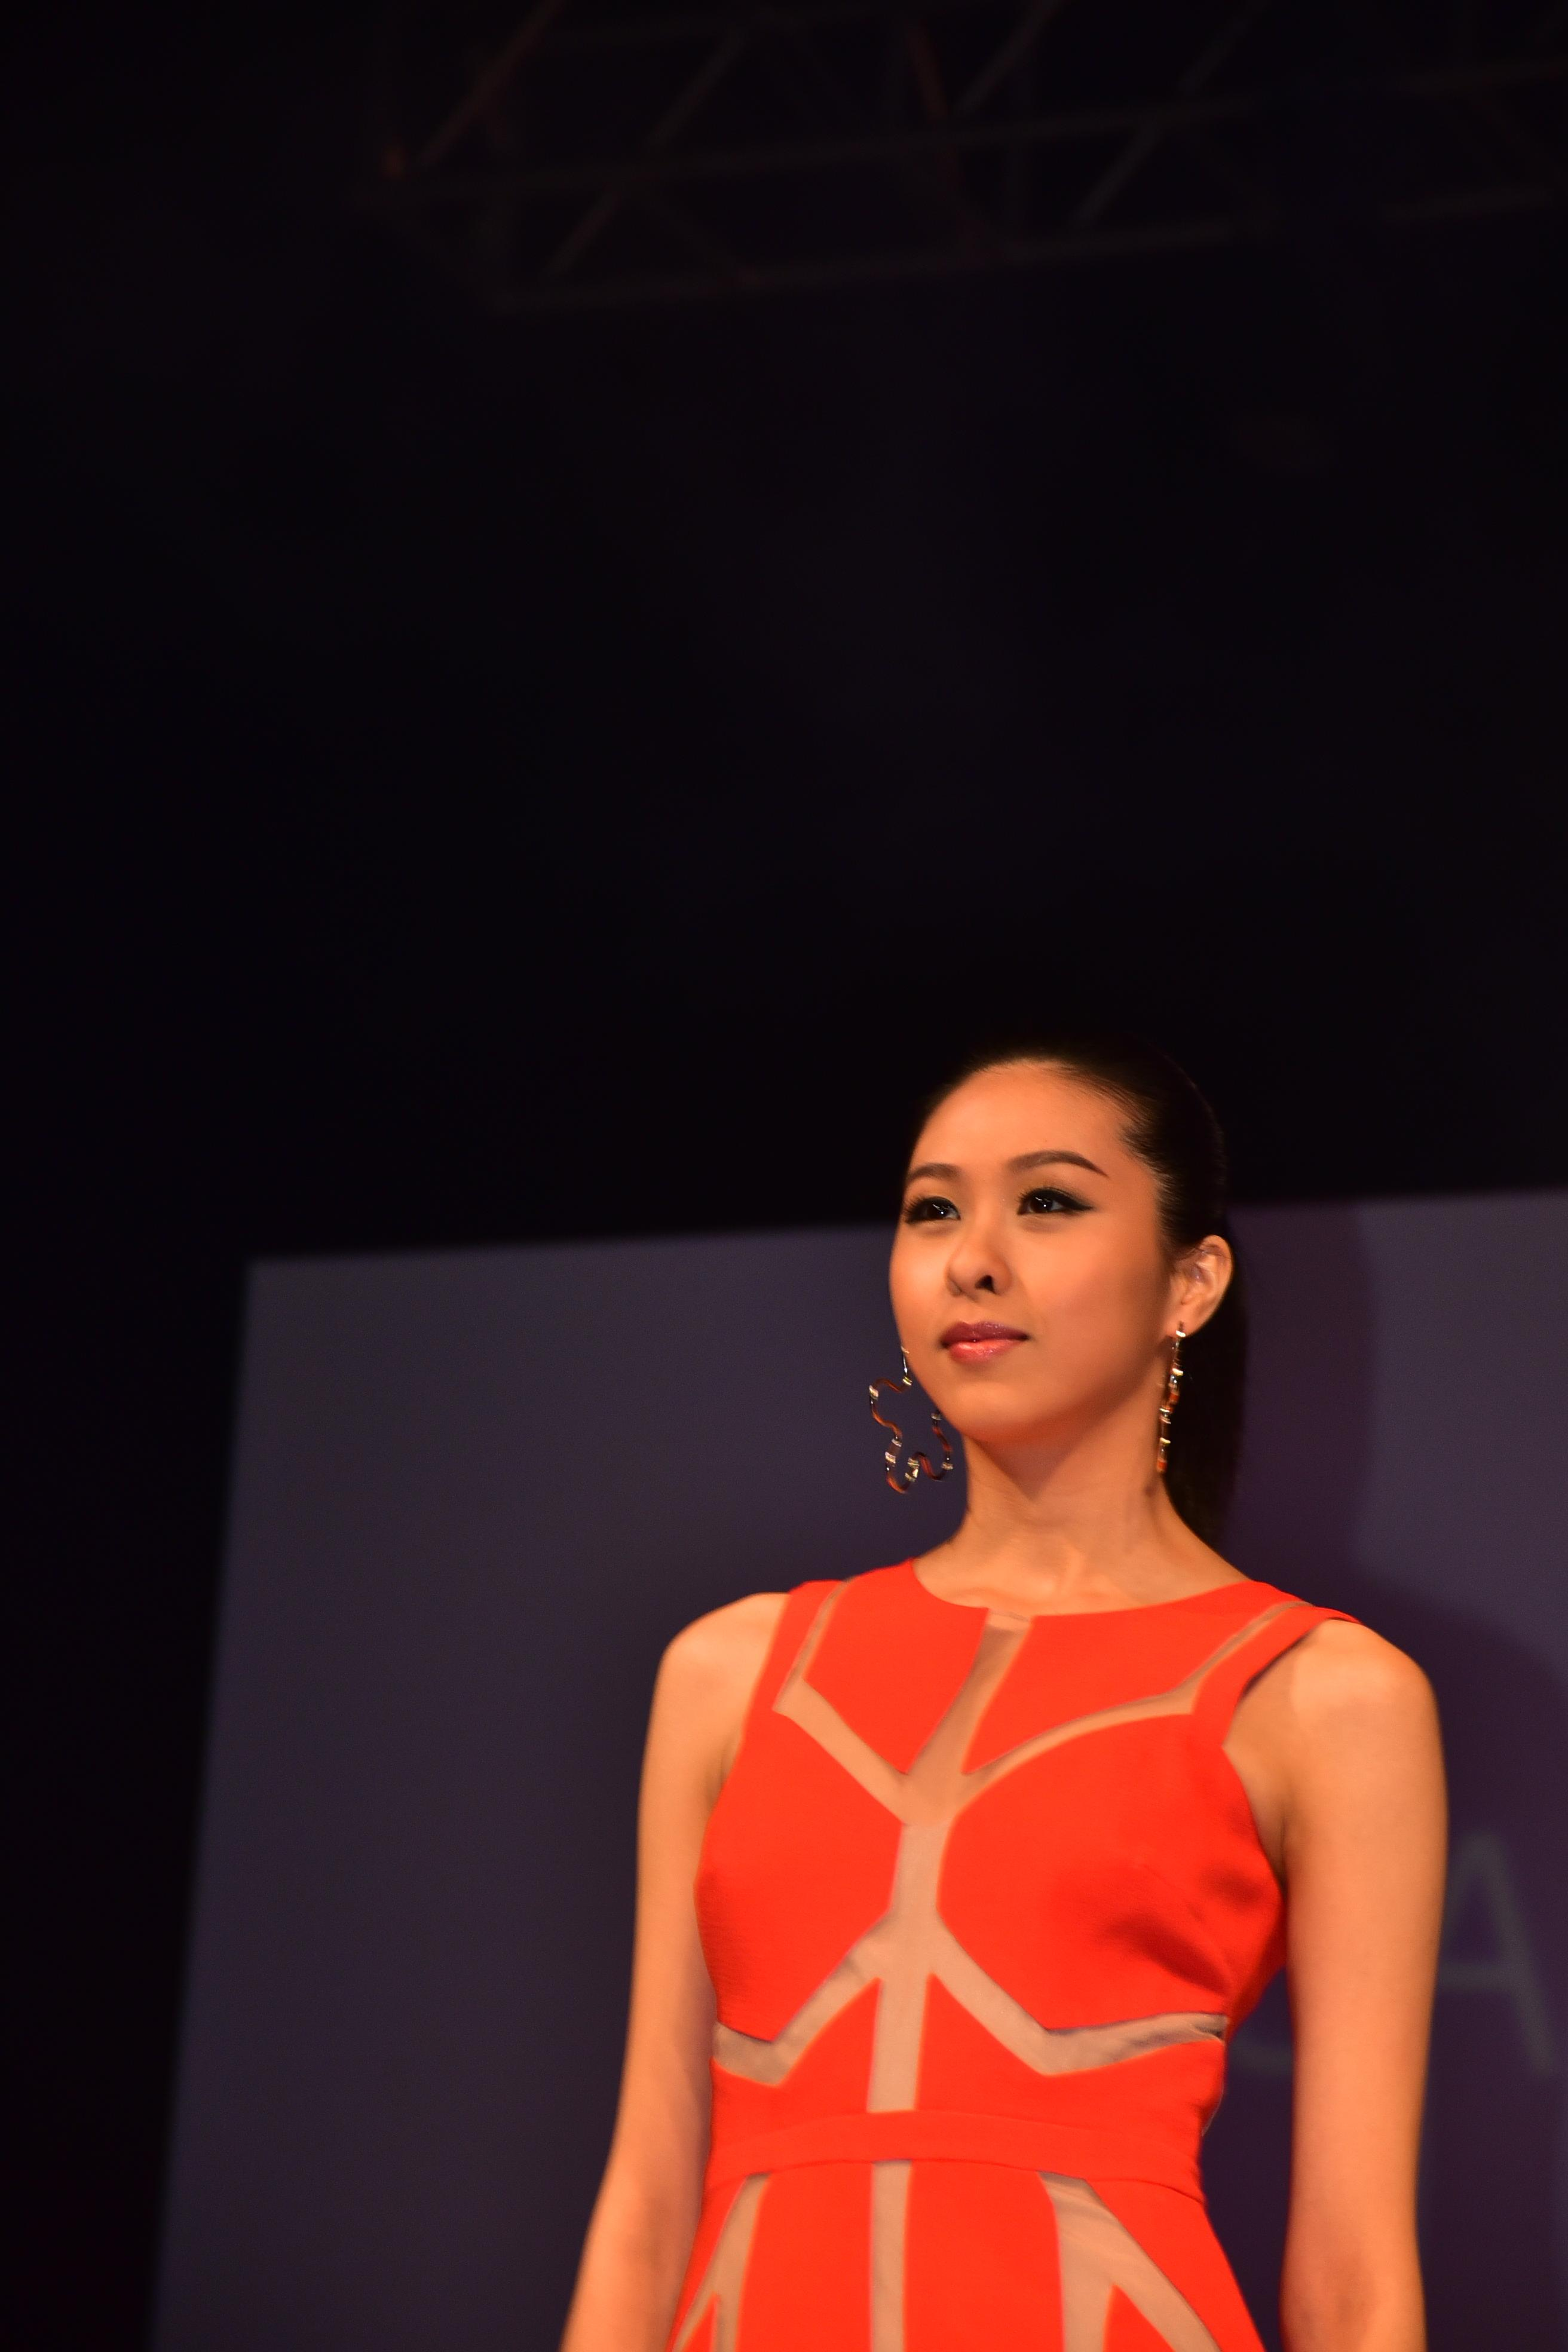 SAMSUNG GALAXY Note 4 with 歌后 蔡依林 !! - XFastest - DSC_2262.JPG